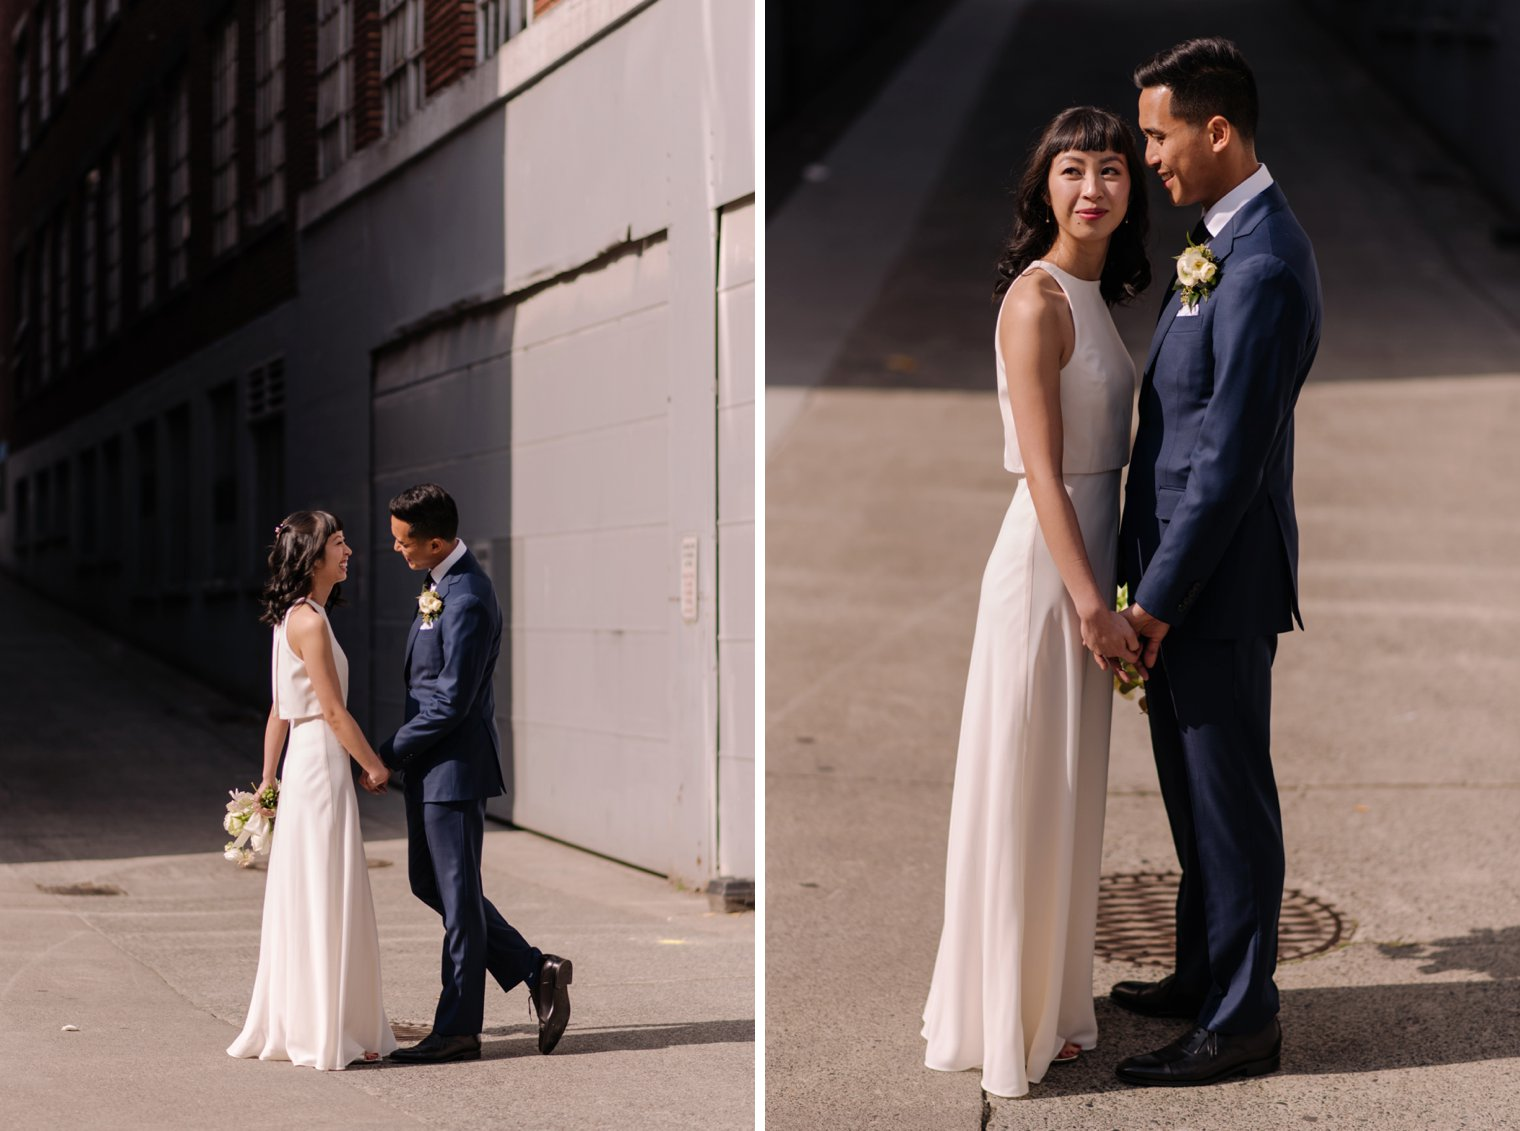 vancouver alley wedding photo